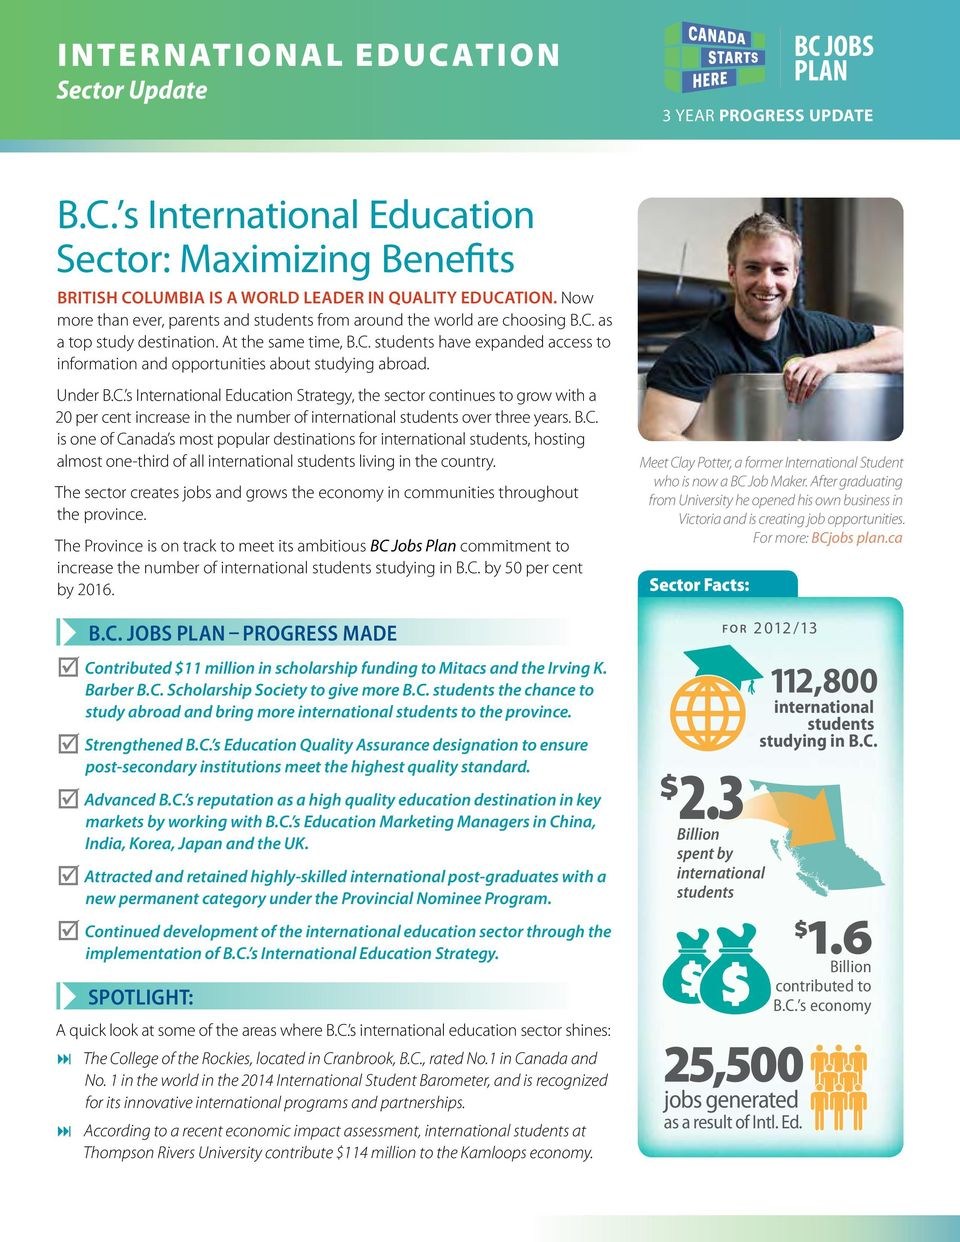 Under B.C. s International Education Strategy, the sector continues to grow with a 20 per cent increase in the number of international students over three years. B.C. is one of Canada s most popular destinations for international students, hosting almost one-third of all international students living in the country.